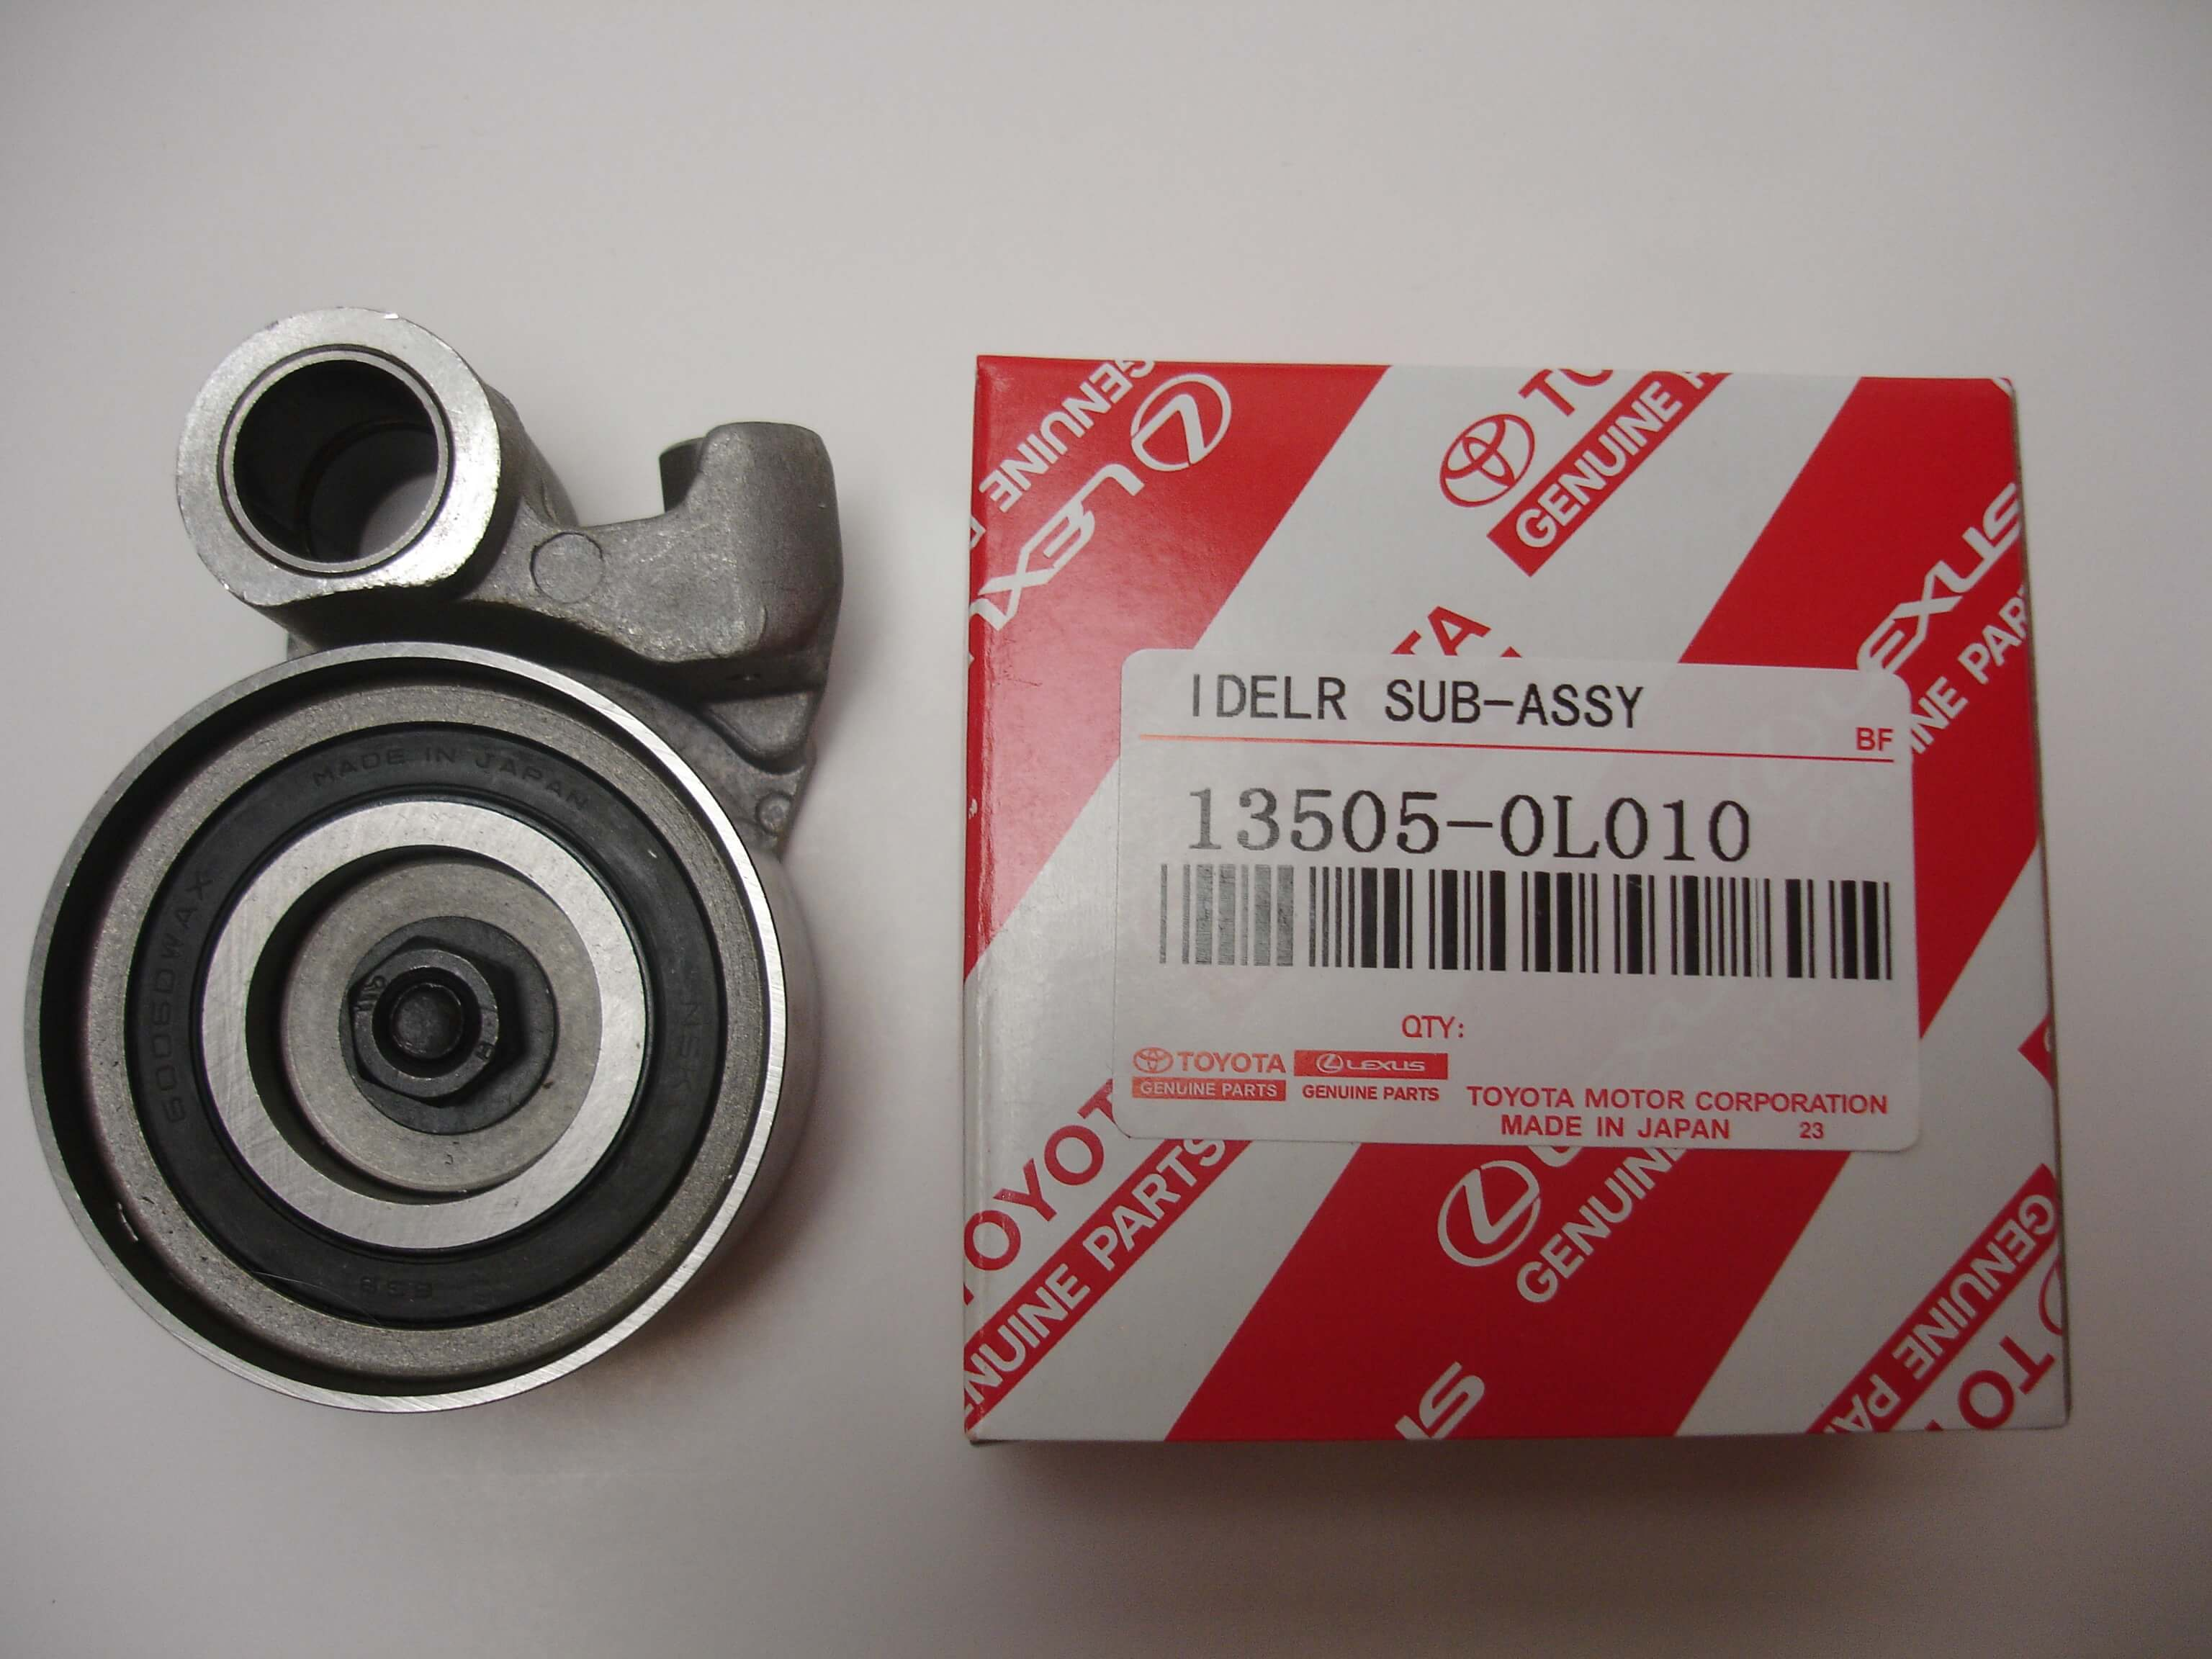 Toyota-OEM-1KD-FTV-and-2KD-FTV-and-1KZ-TE-Timing-Belt-idler-13505-0L010